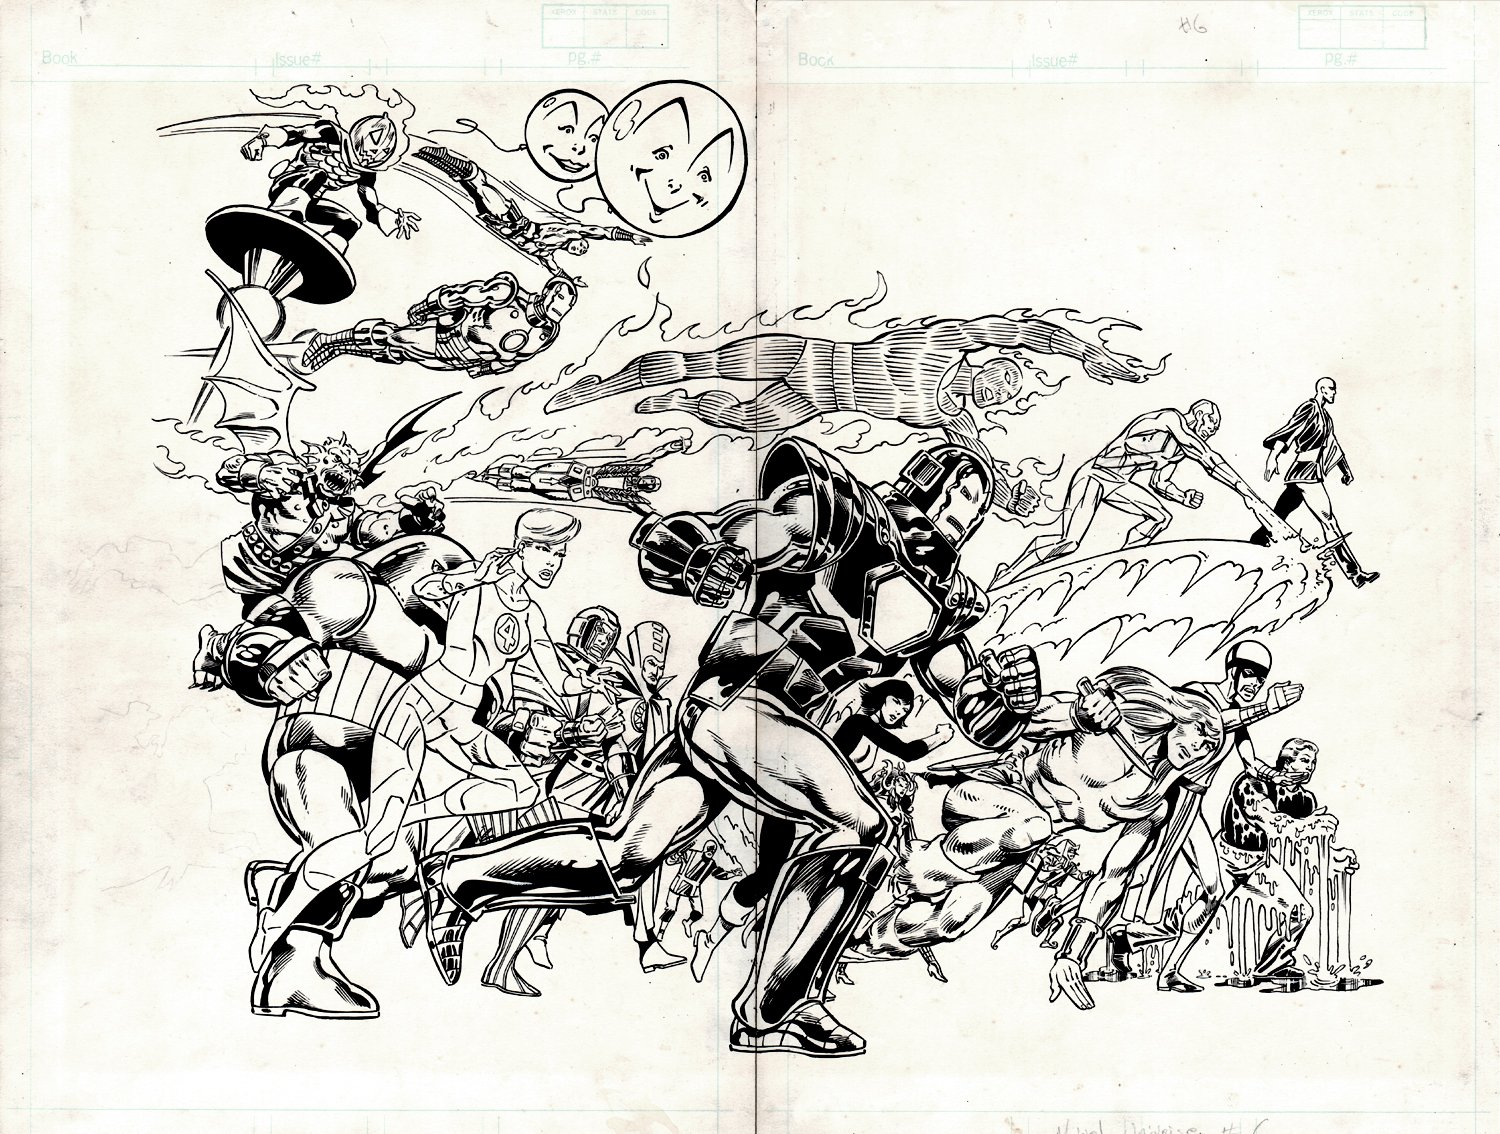 The Official Handbook of the Marvel Universe #6 Wraparound Double Cover (1986)